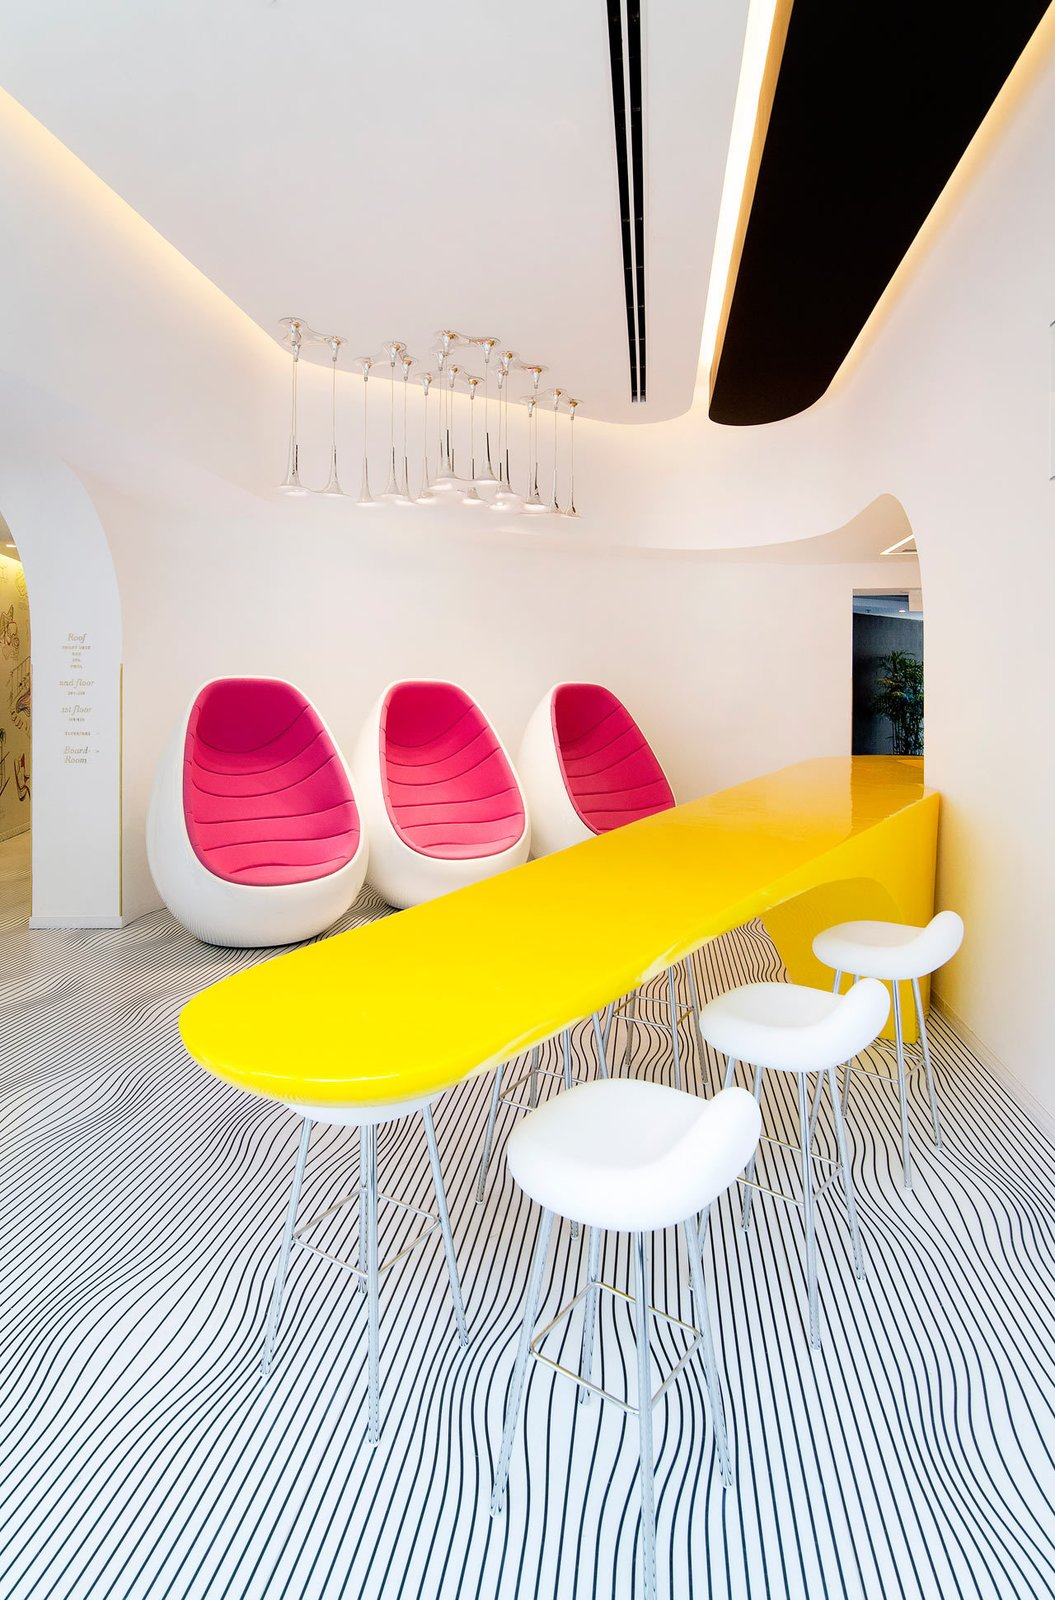 Photo 3 of 11 in Restored Bauhaus Building Gets the Karim Rashid Treatment in Tel Aviv